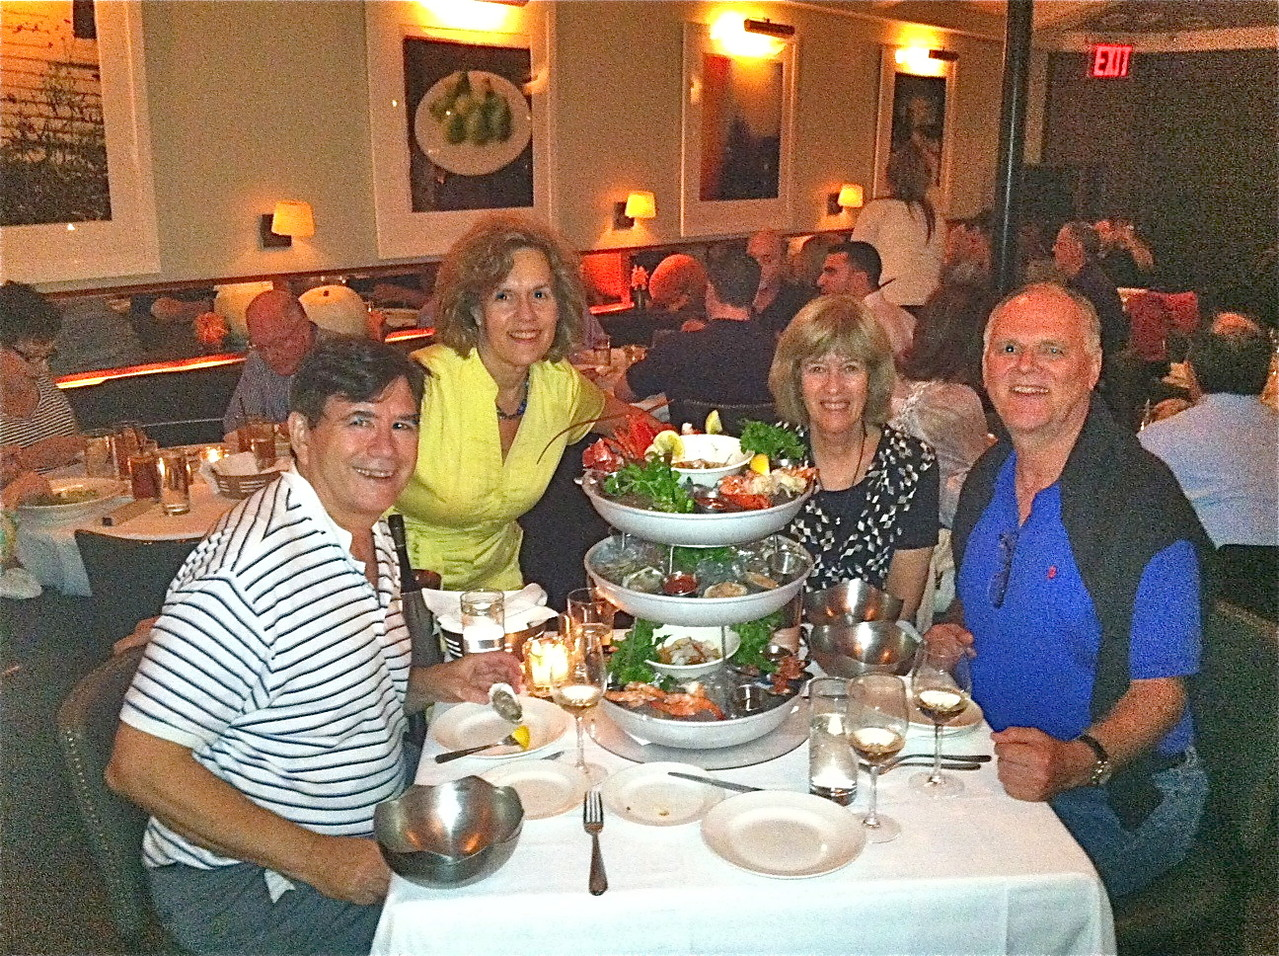 Nancy Hynes & Bernd Groner's Visit to NYC, October 3-7, 2013 At the Atlantic Grill, Seafood Tower!